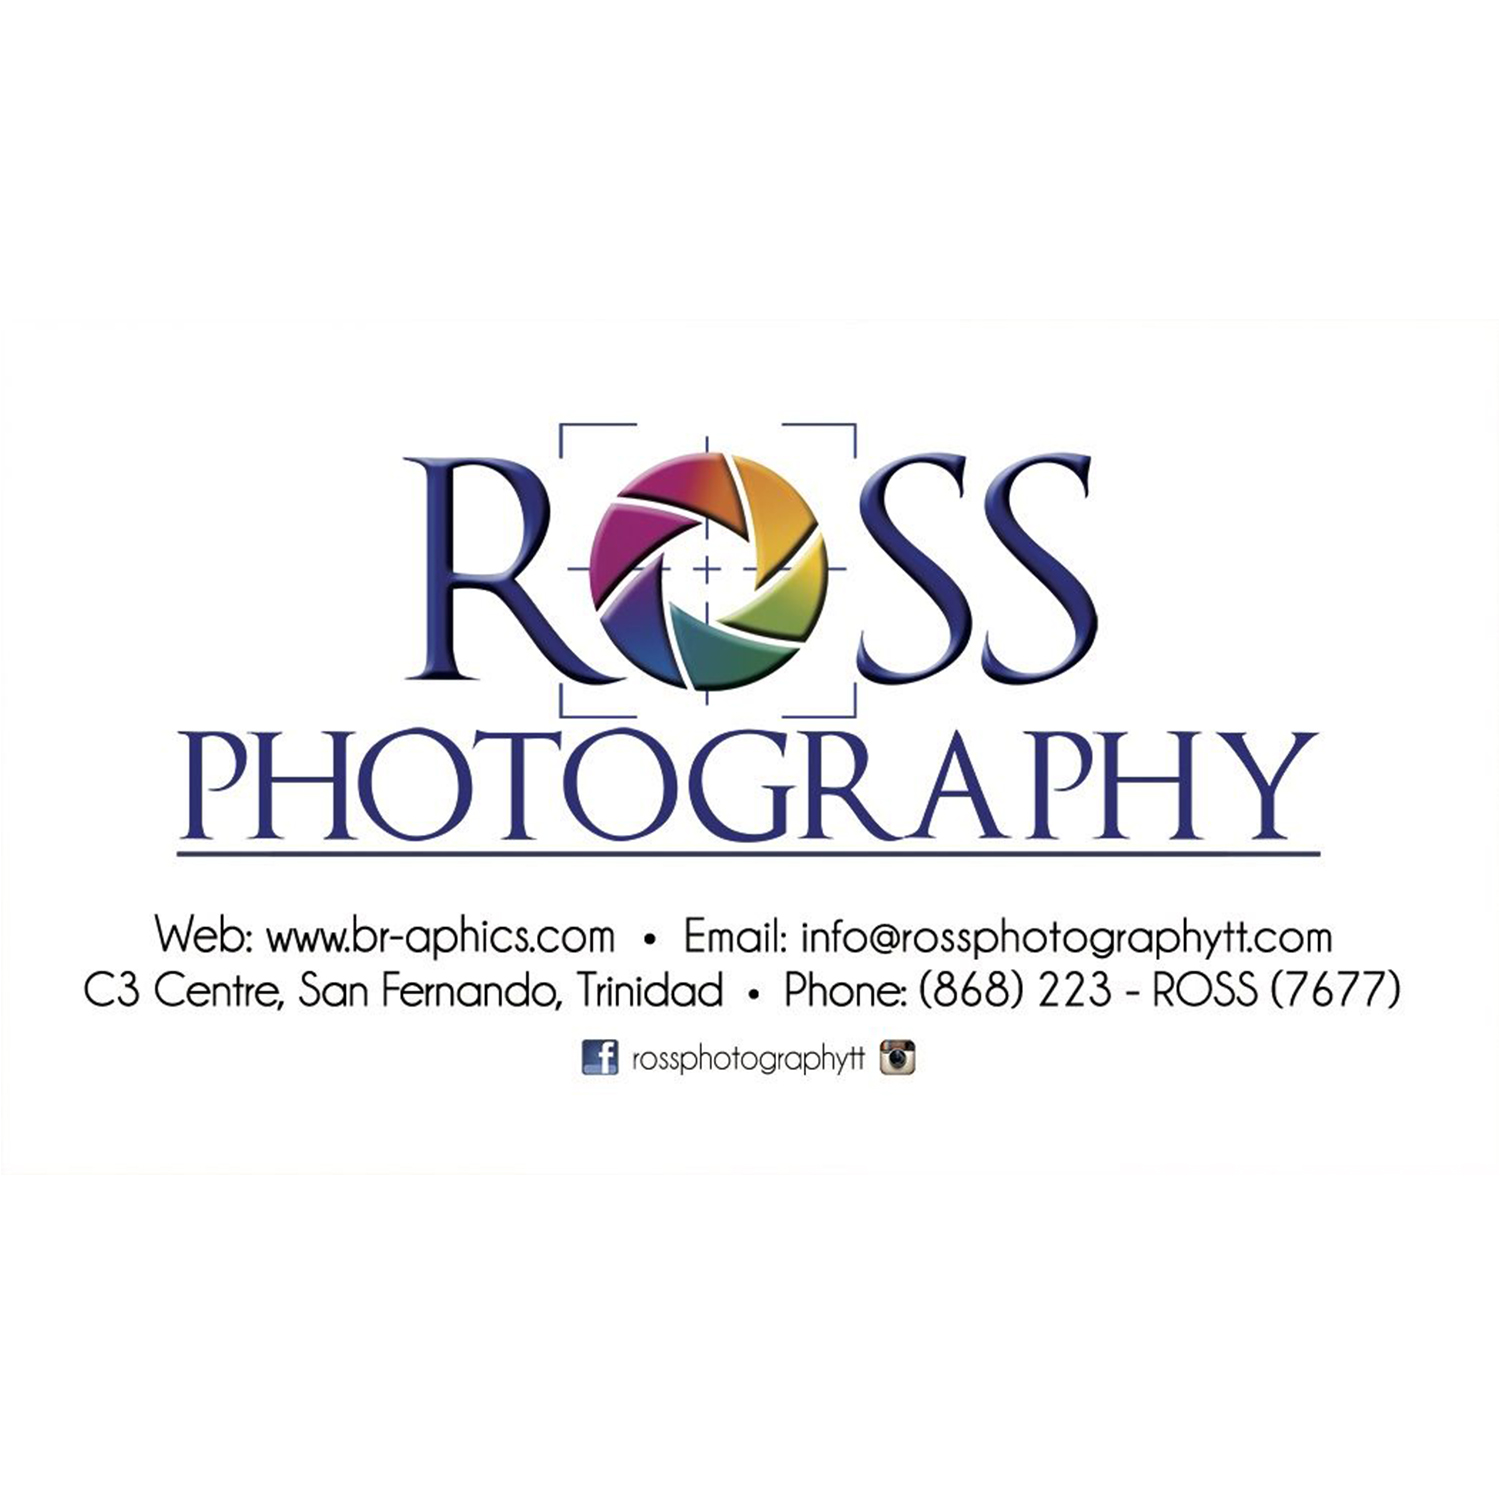 Ross Photography